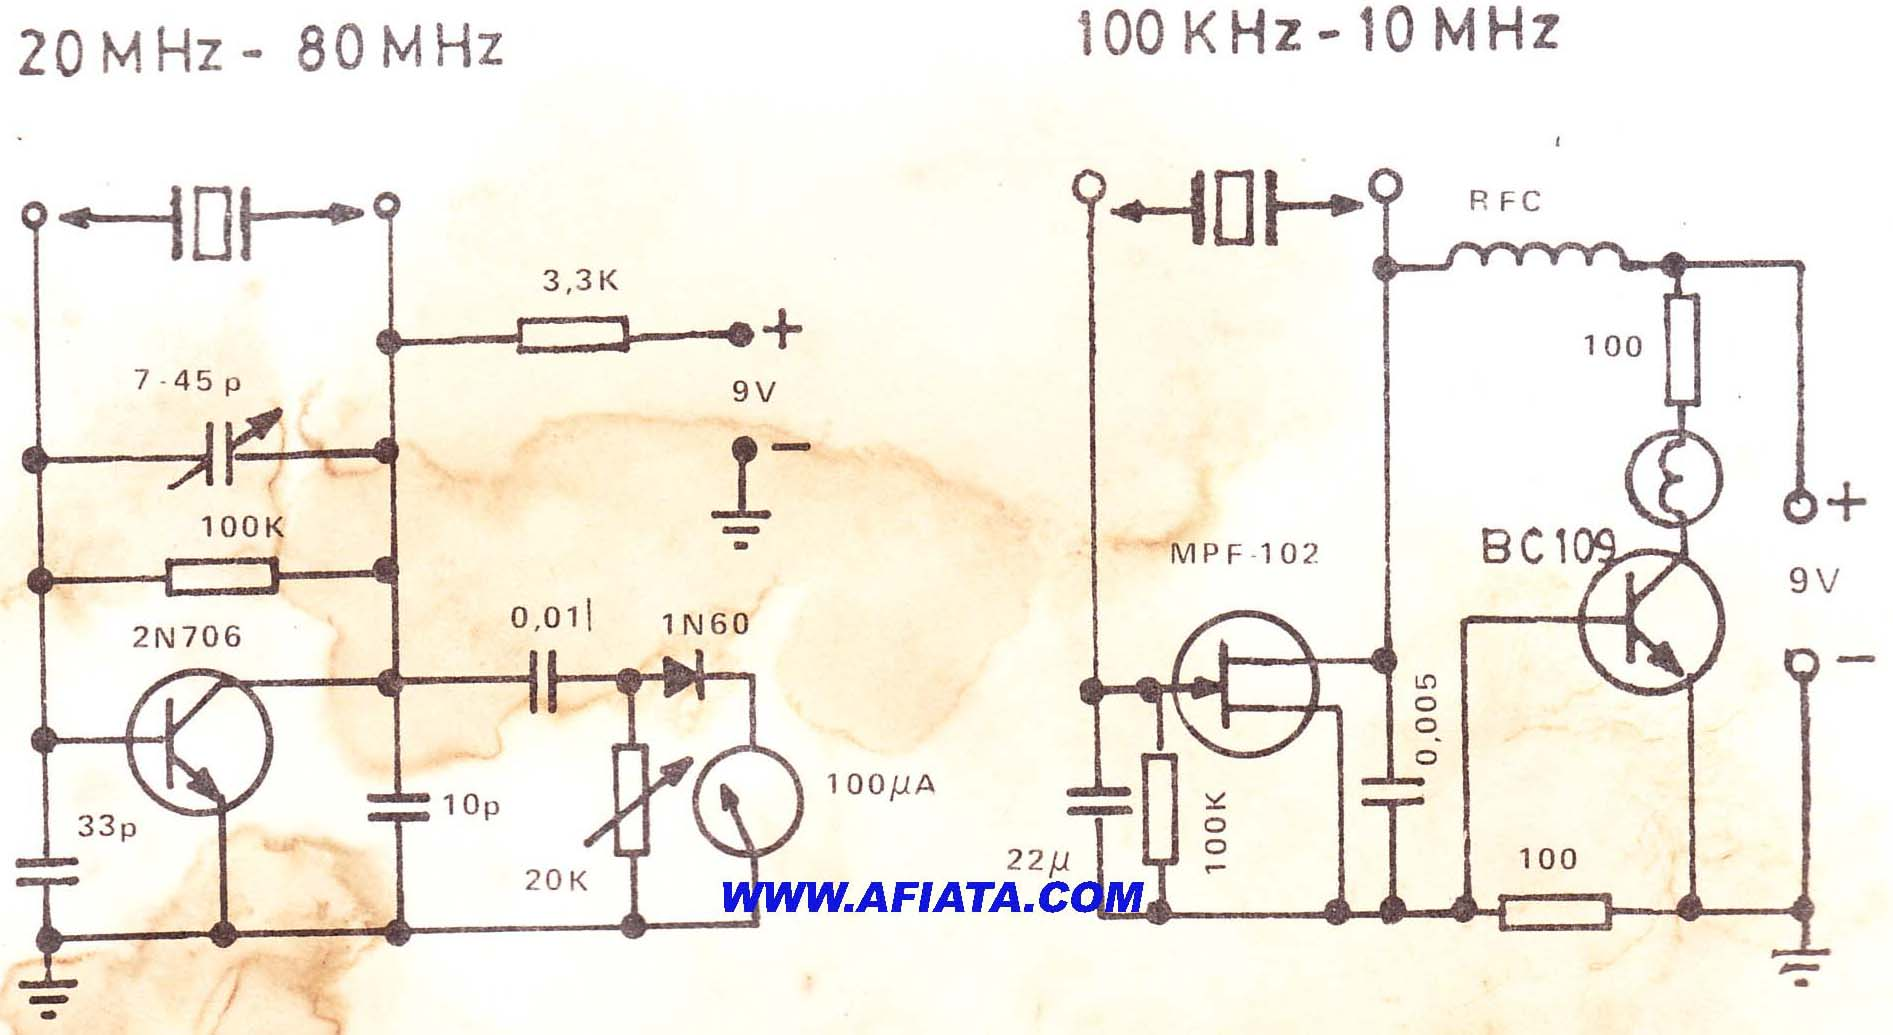 simple crystal tester circuit - schematic